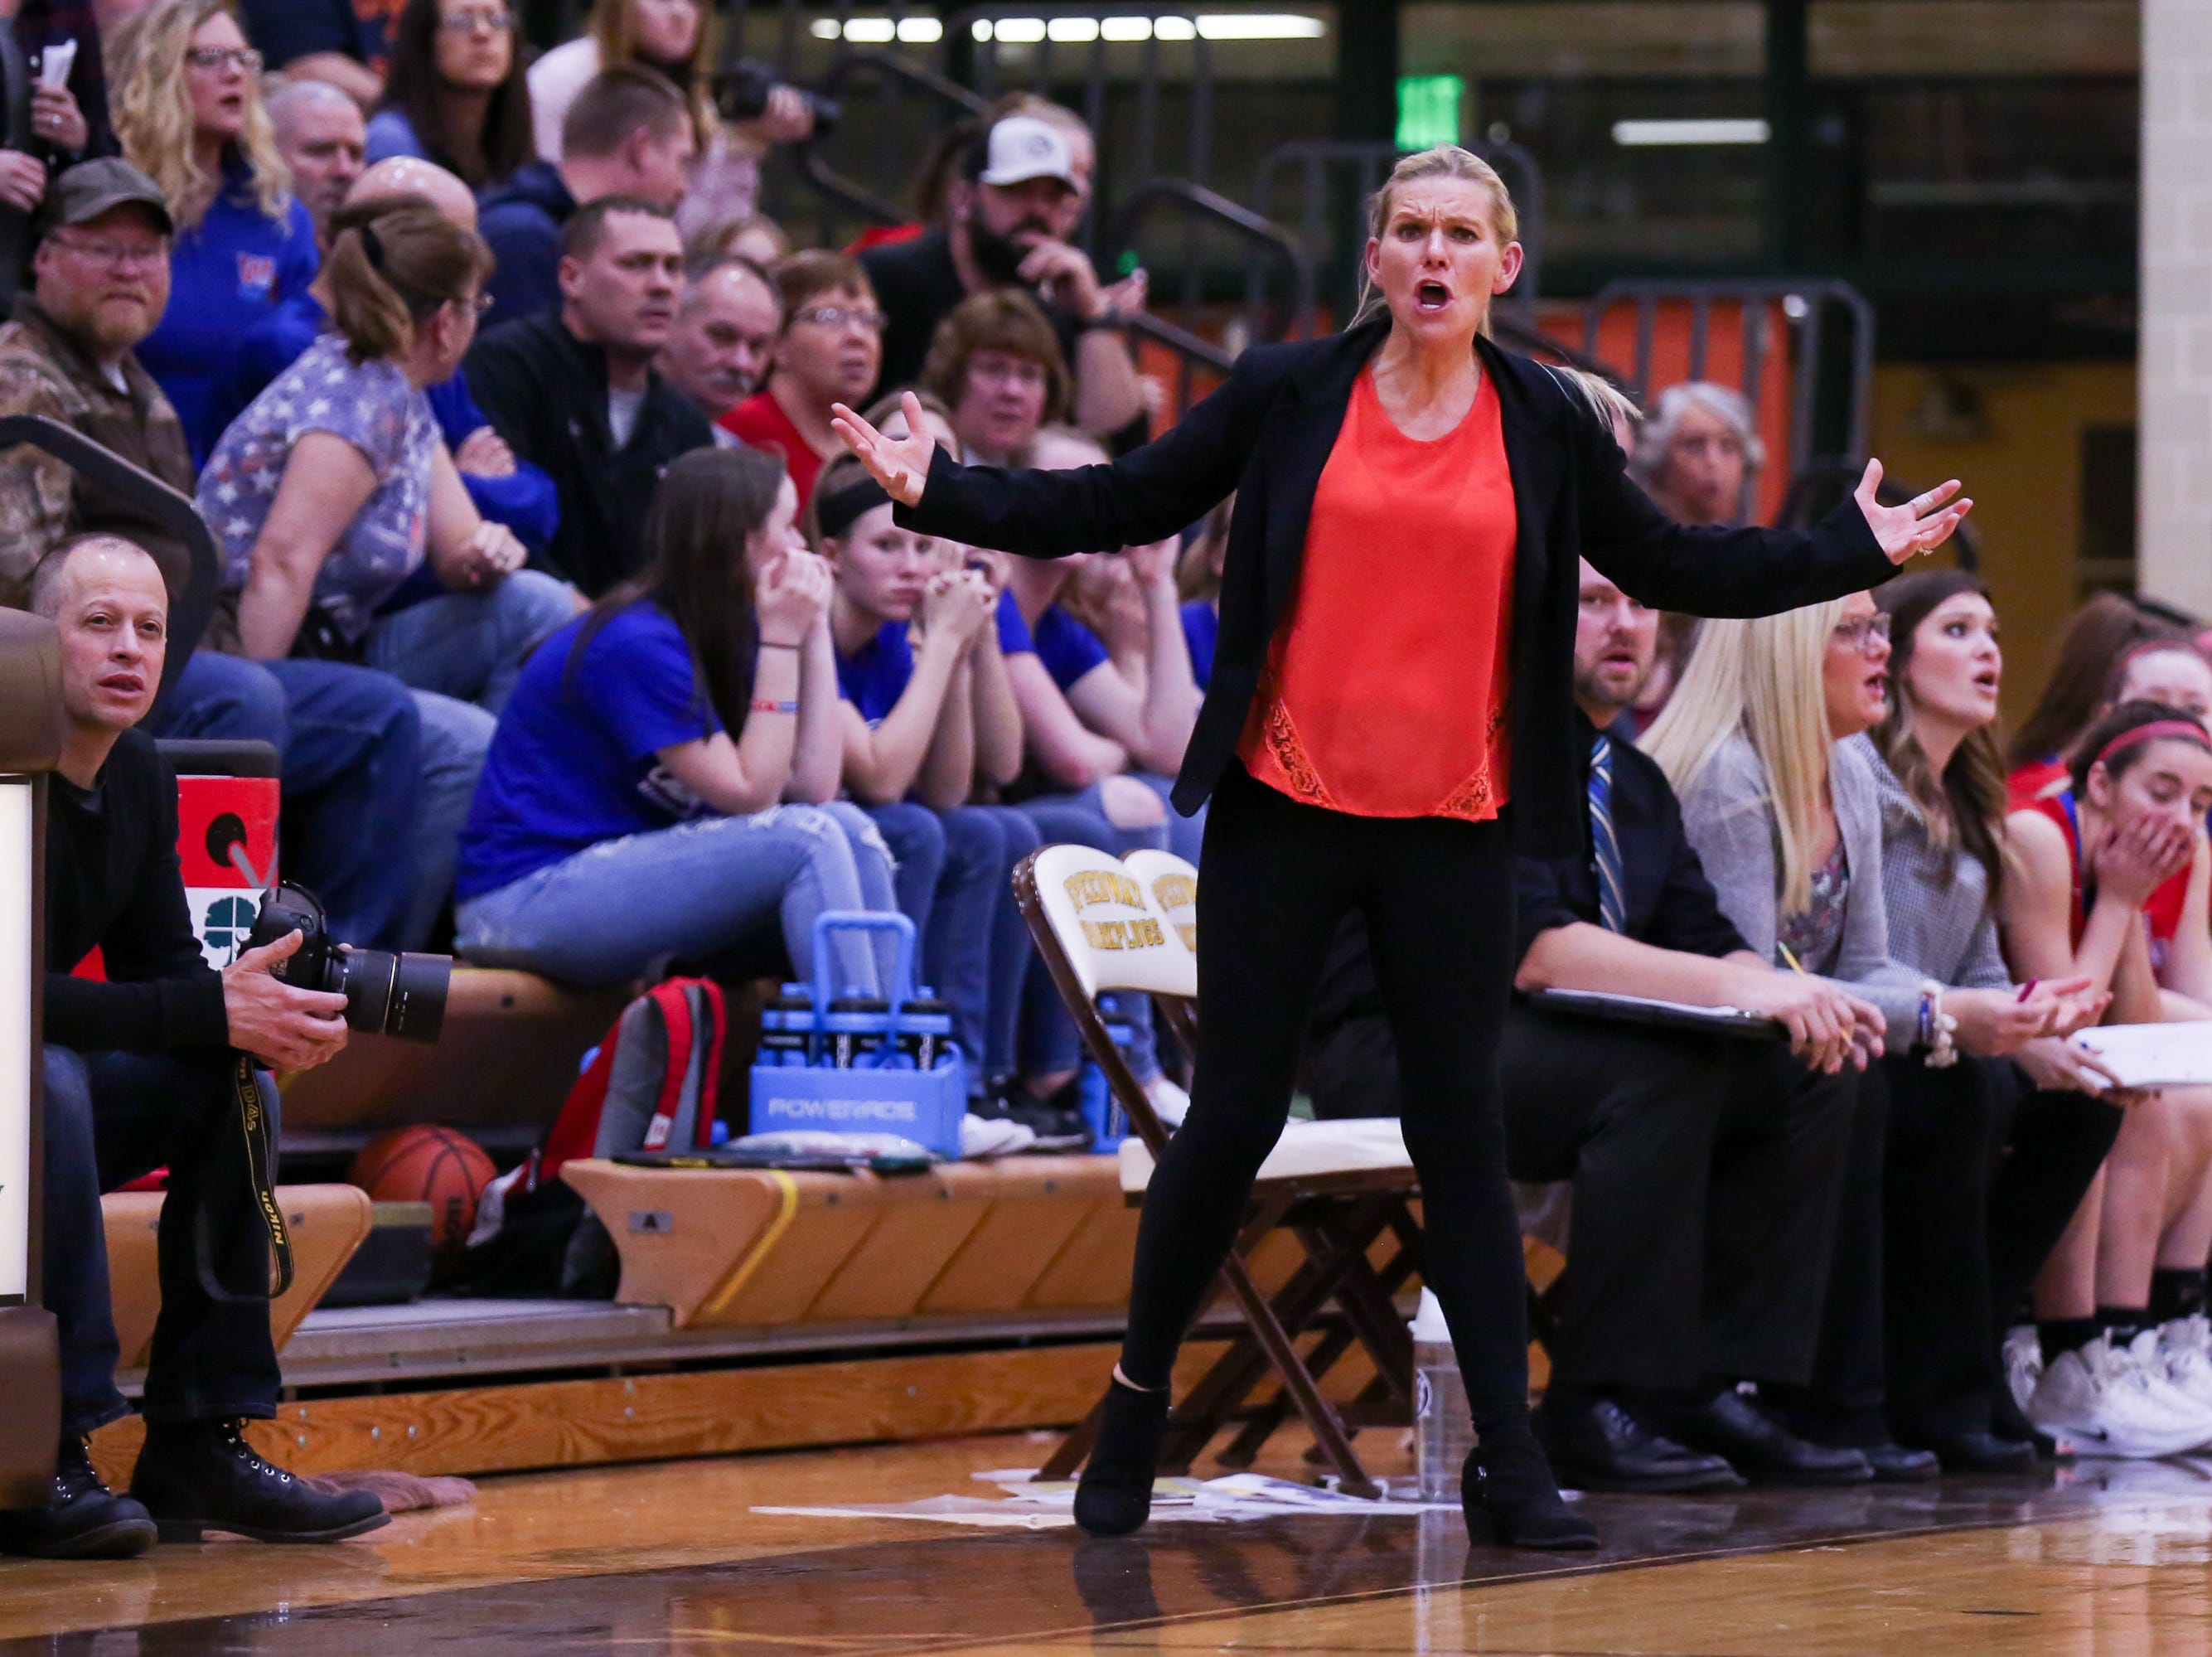 Western Boone Coach Megan Alexander questions an officials call during the second half of Western Boone vs. Winchester Community high school girls varsity 2A Regional basketball tournament held at Speedway High School, February 9, 2019.